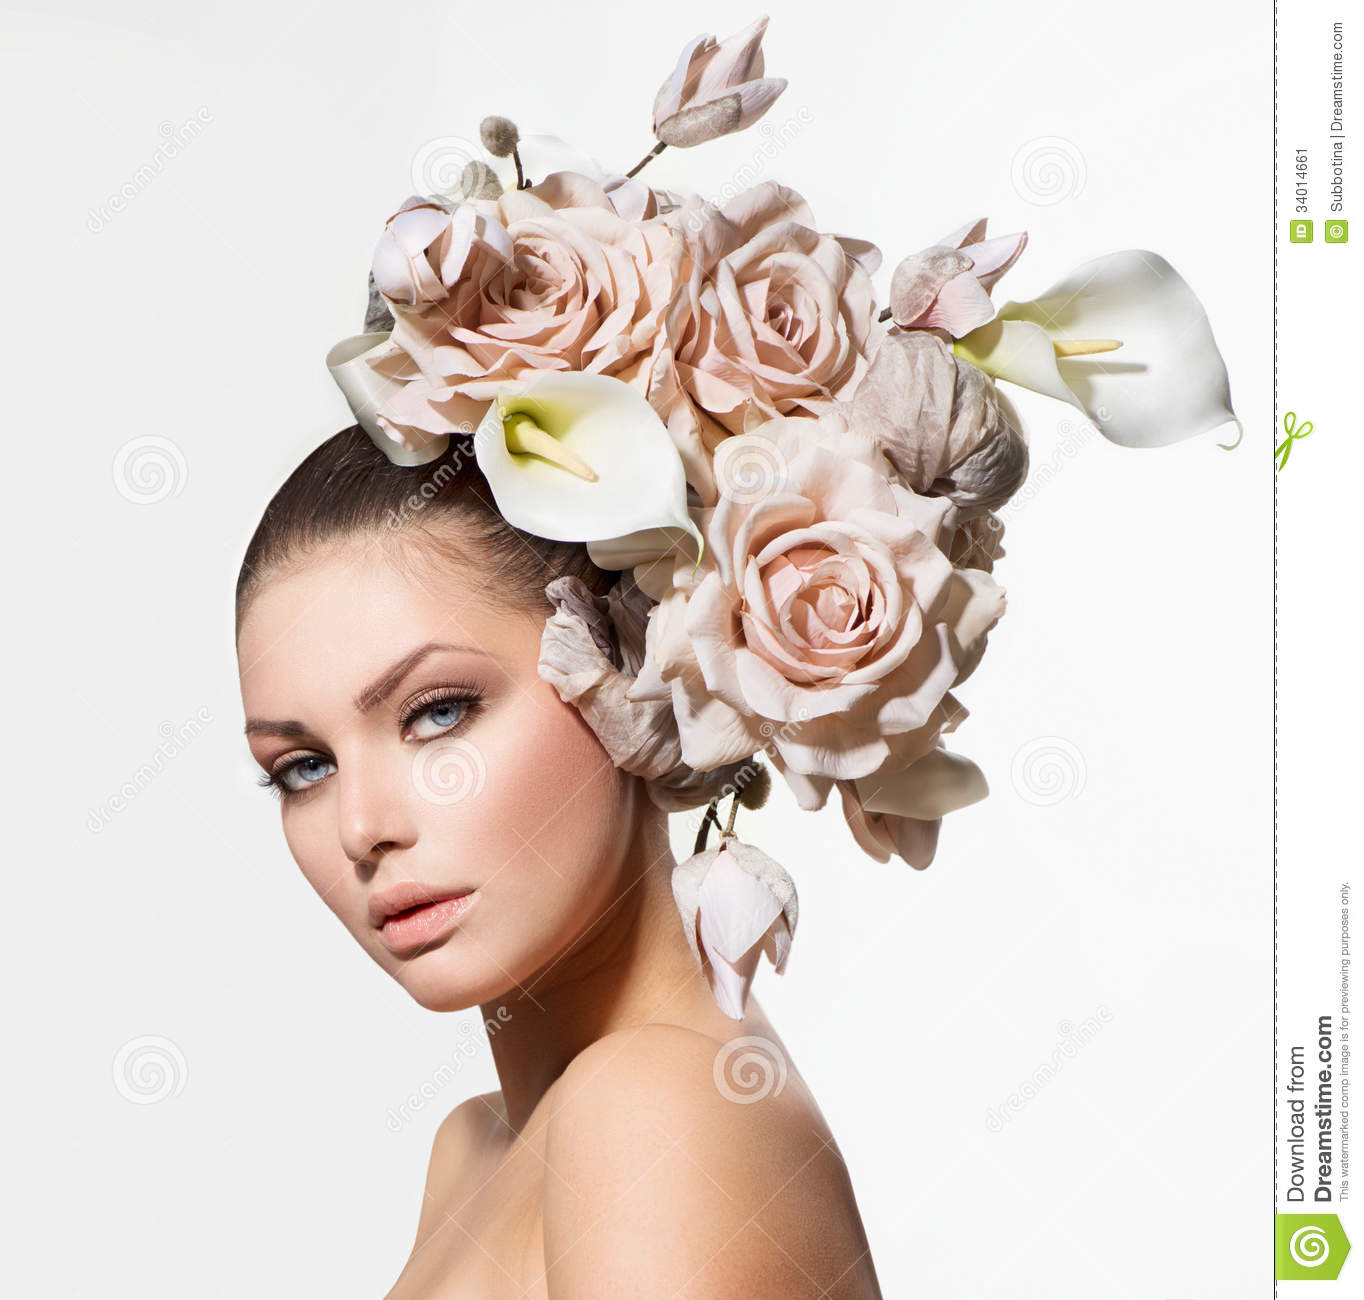 Fashion Beauty Girl with Flowers Hair. Bride. Creative Hairstyle.